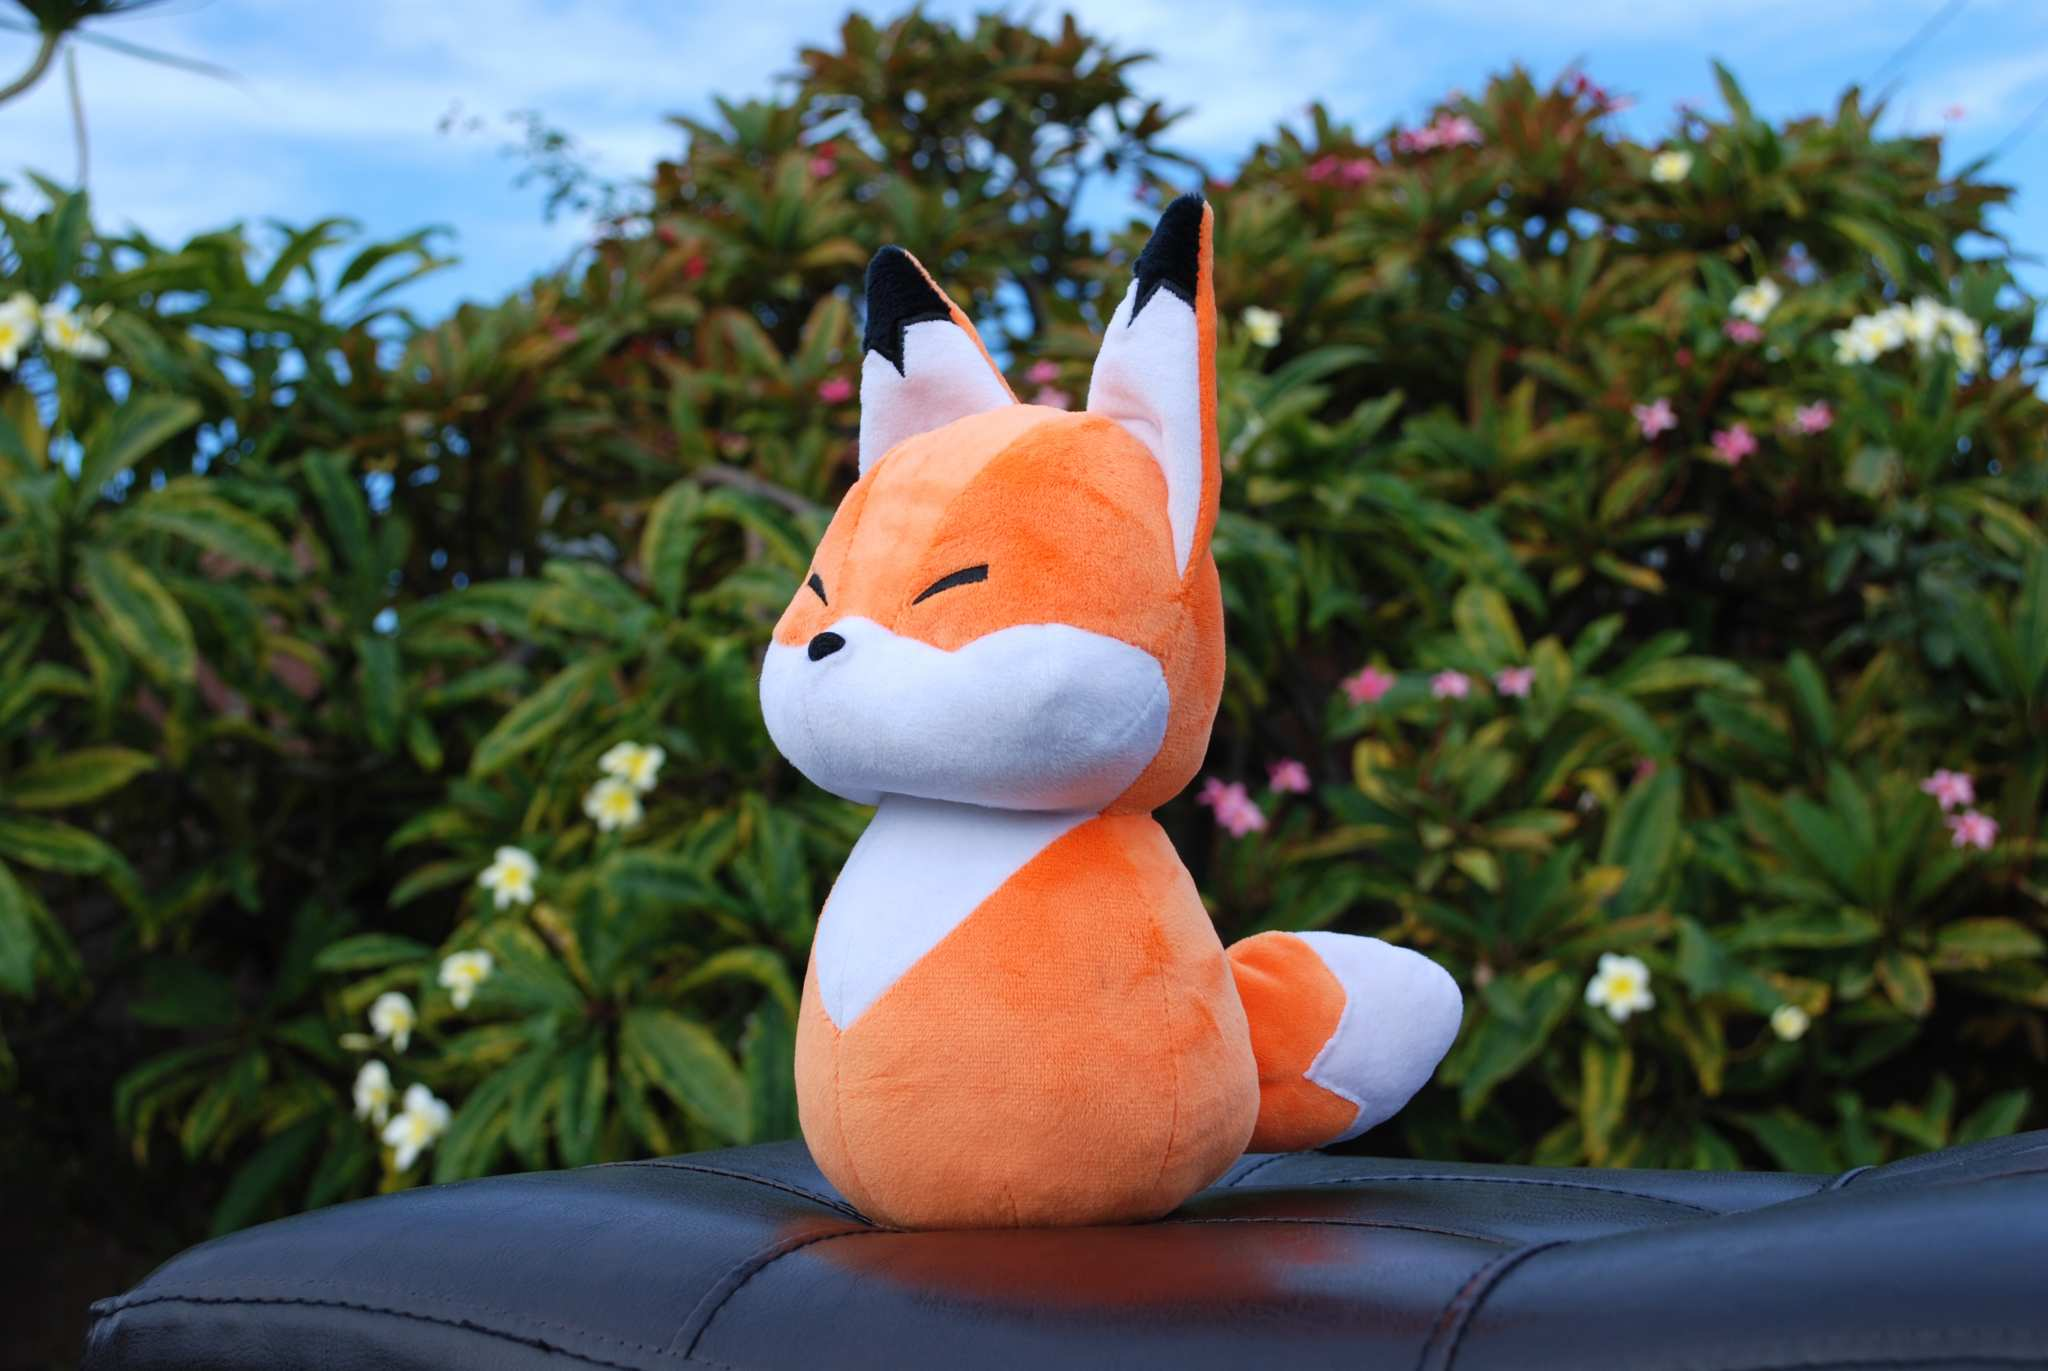 natural pop is a new stuffed animal company making cute plushies and